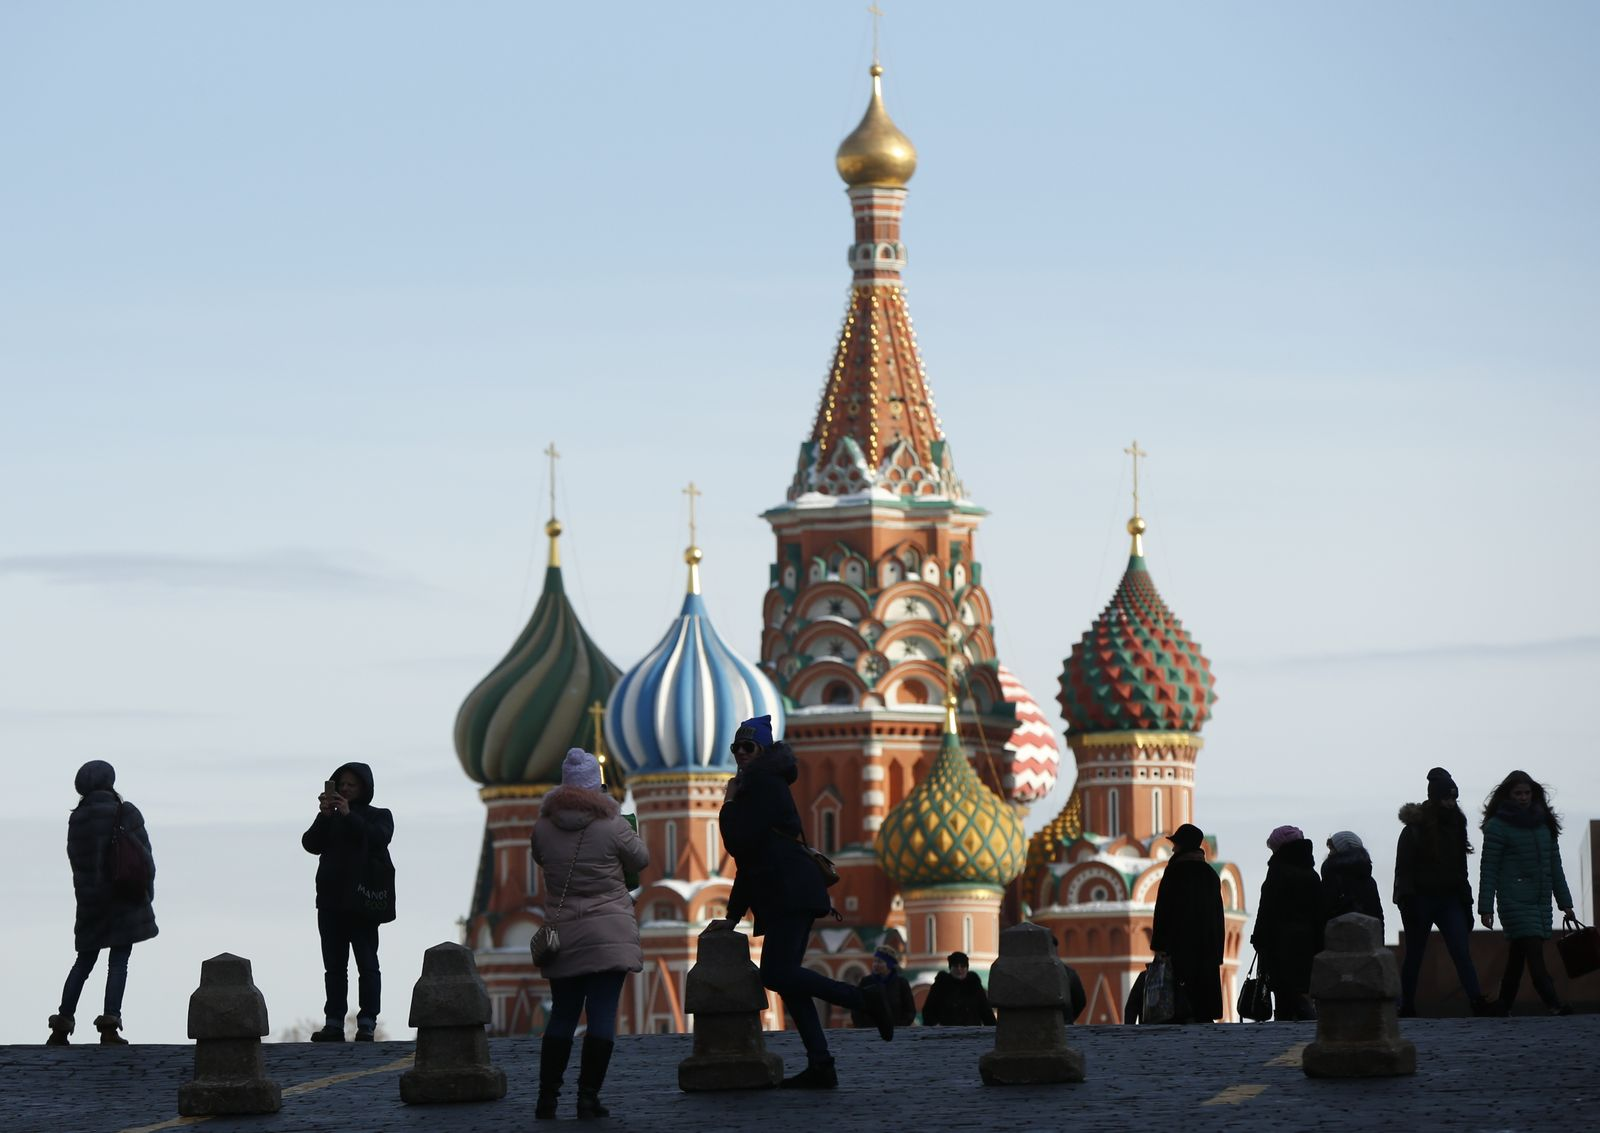 People take pictures next to St. Basil's Cathedral at Red Square in Moscow